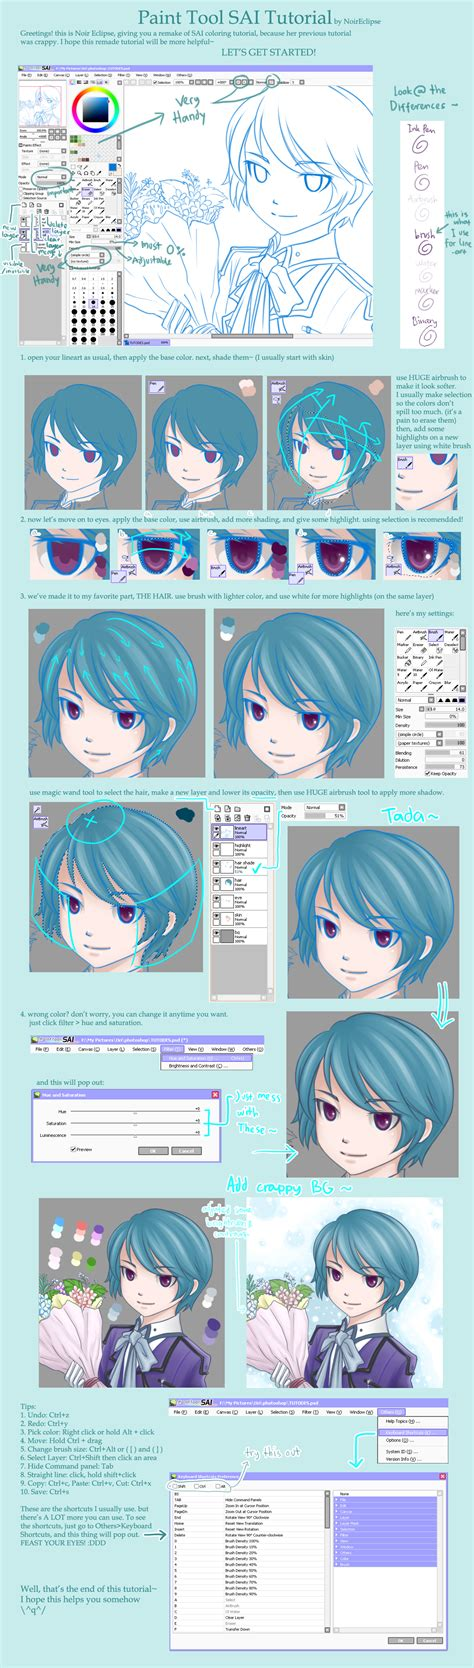 paint tool sai rpc tutorial paint tool sai tutorial by noireclipse on deviantart